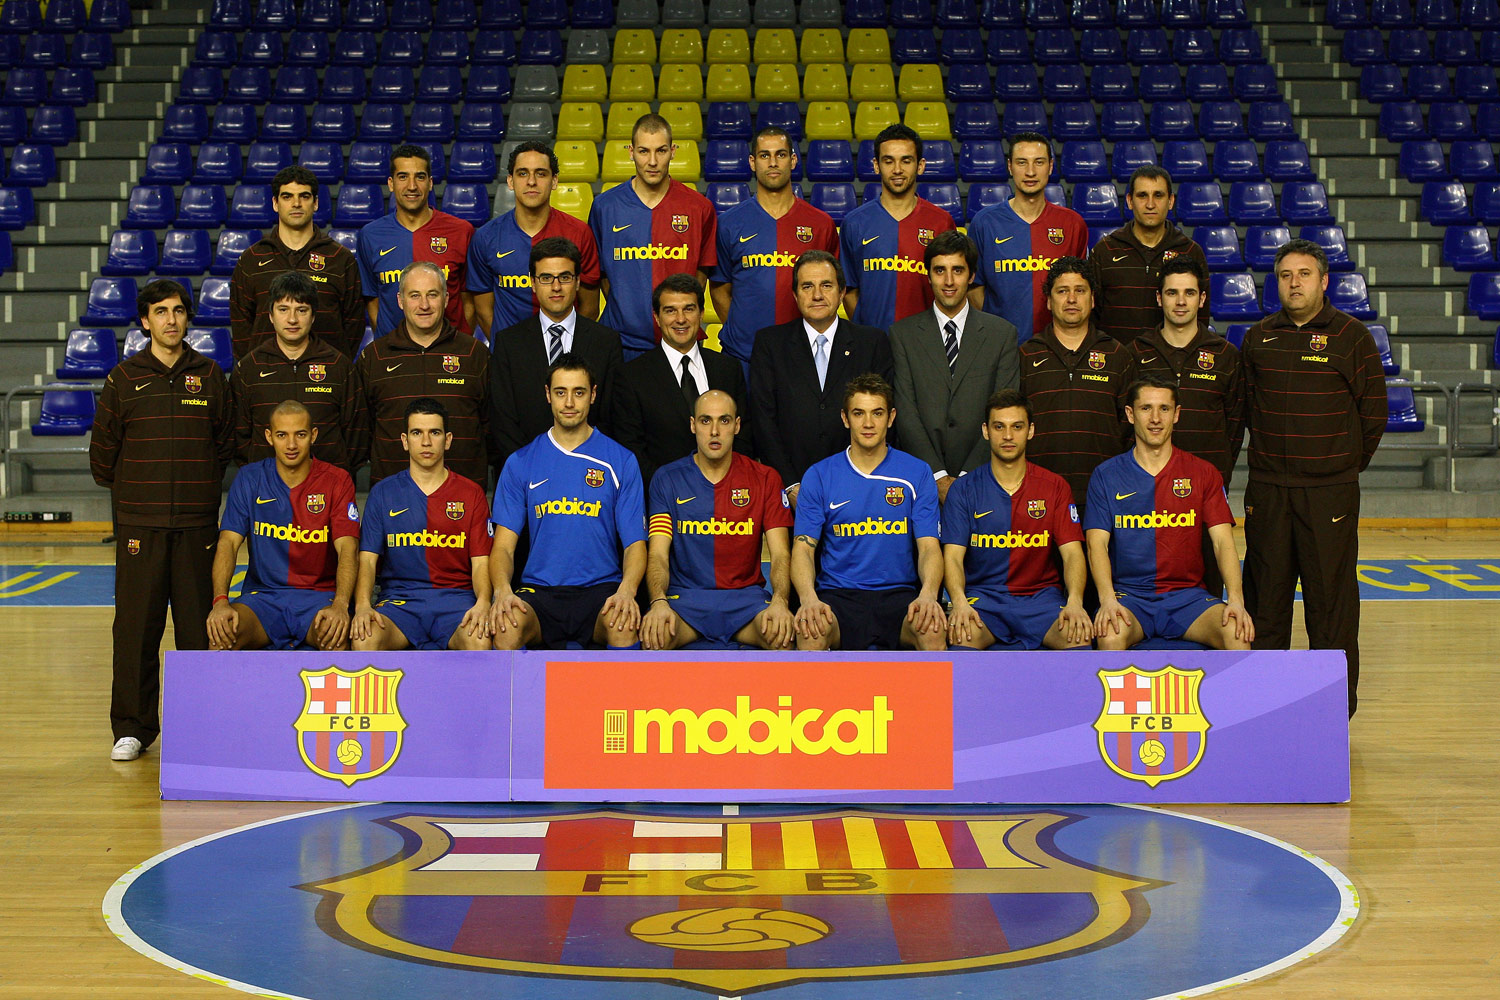 barcelona football club website Photo